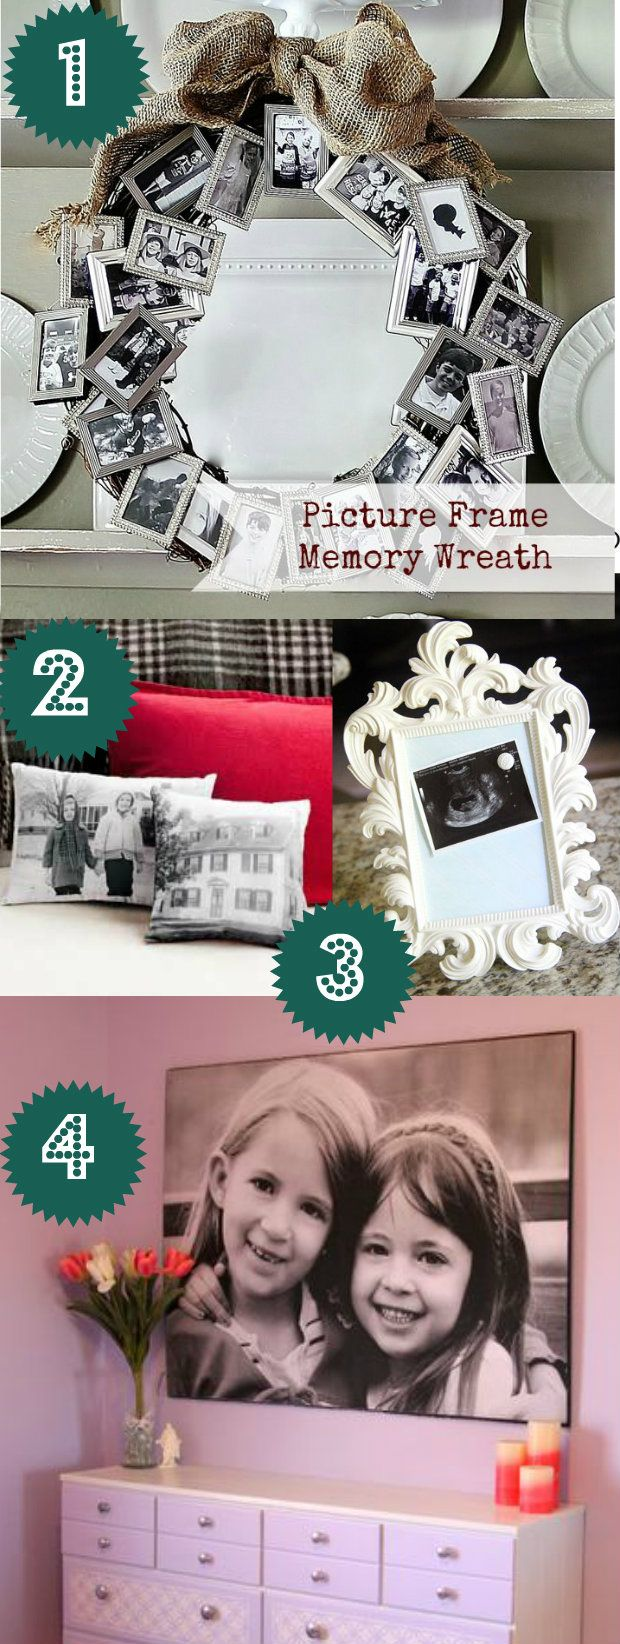 DIY Gift Ideas: 29 Handmade Gifts Did you know you can create a 3′x4′ black and white photo for around $5? You can! It's called an engineering print and your local office supply store should offer it. Print out your favorite photo and attach it to a pre-cut piece of particle board or painted plywood with spray adhesive. I love this gift idea because it's huge and inexpensive ;) .